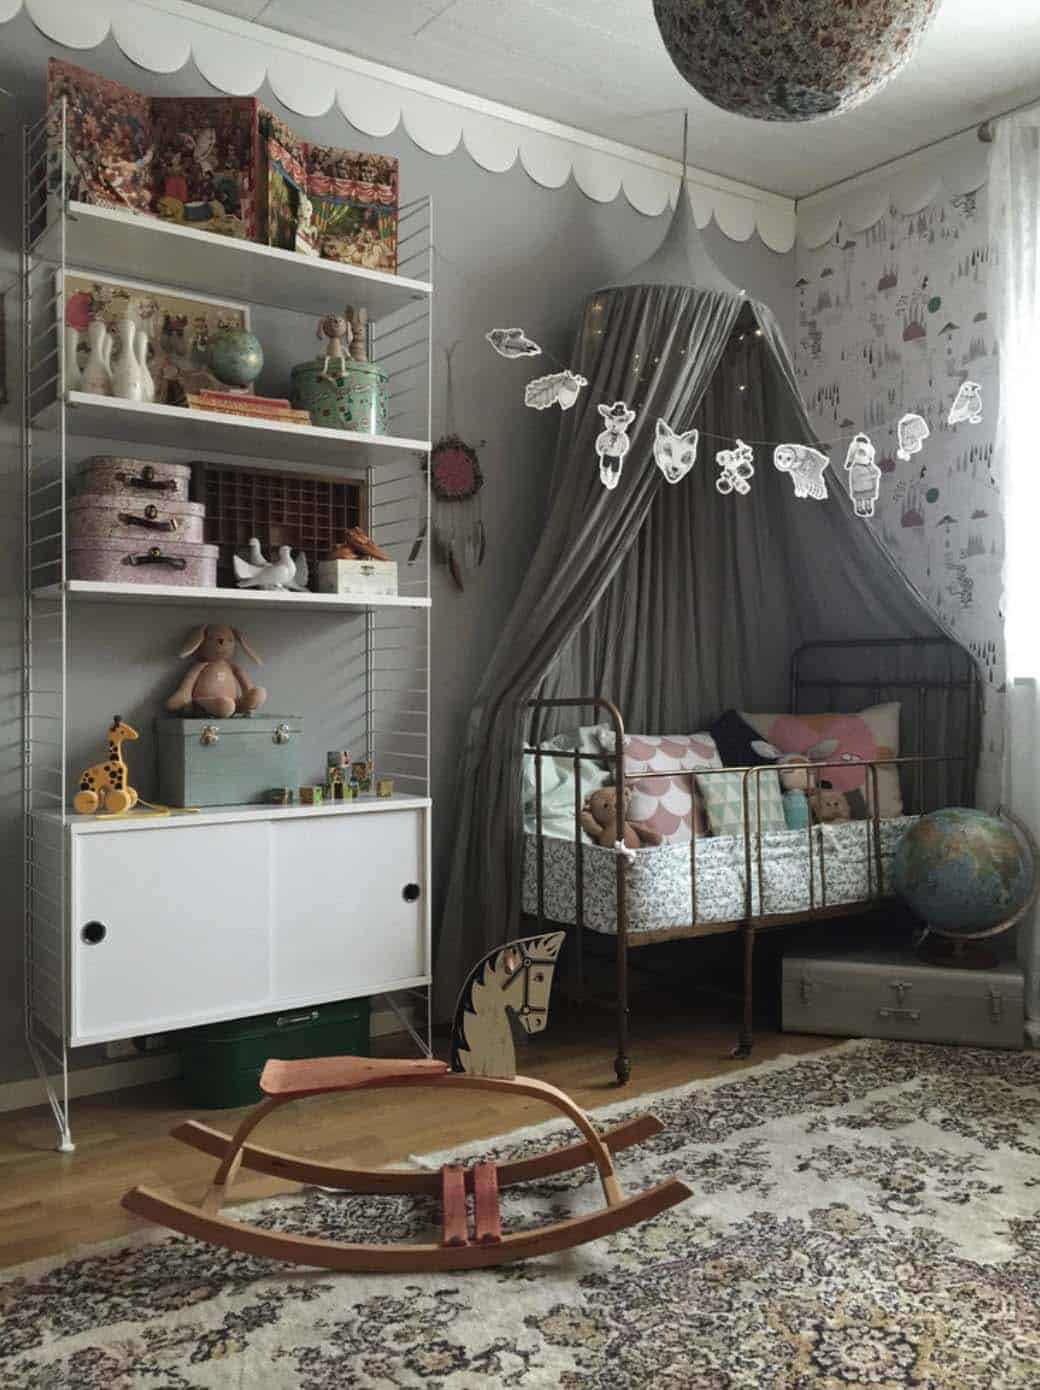 Stylish Nursery Decorating Ideas-38-1 Kindesign